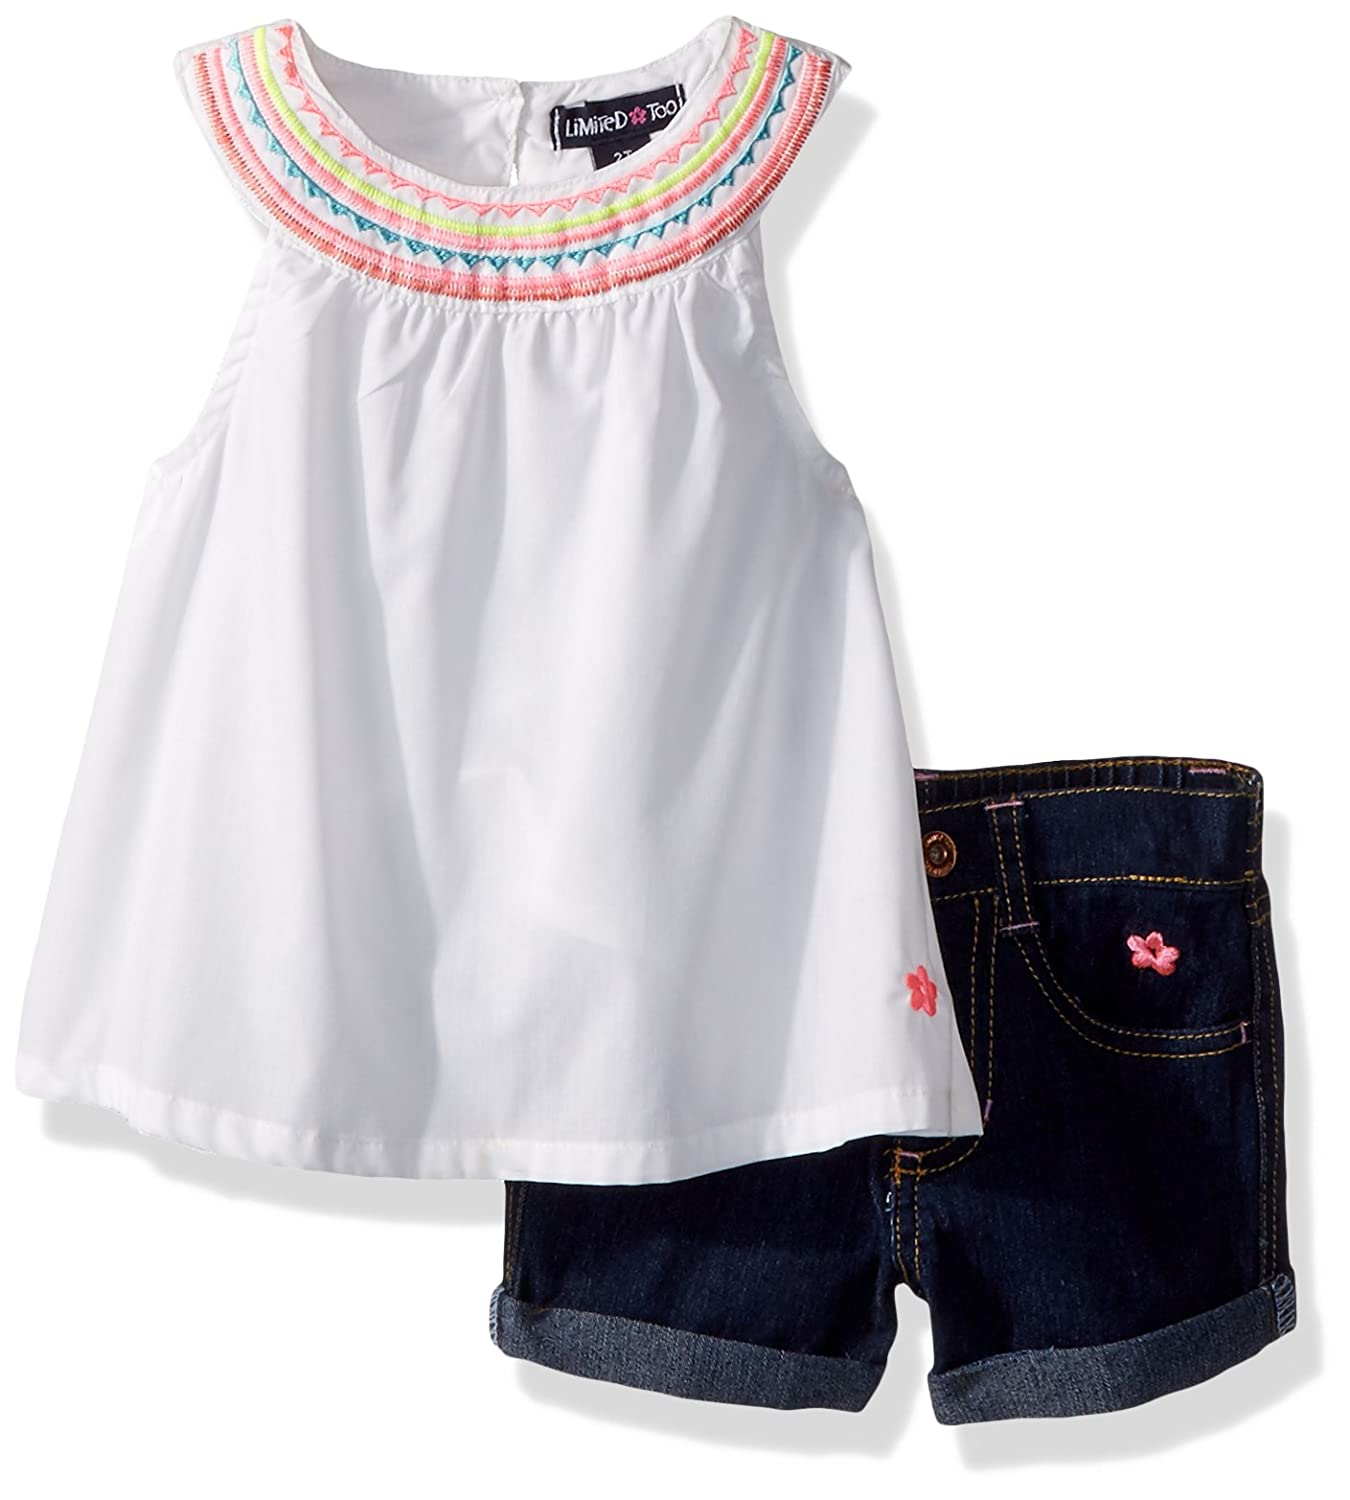 Limited Too Girls 2 Piece Sleeveless Top and Bermuda Short 2785_1